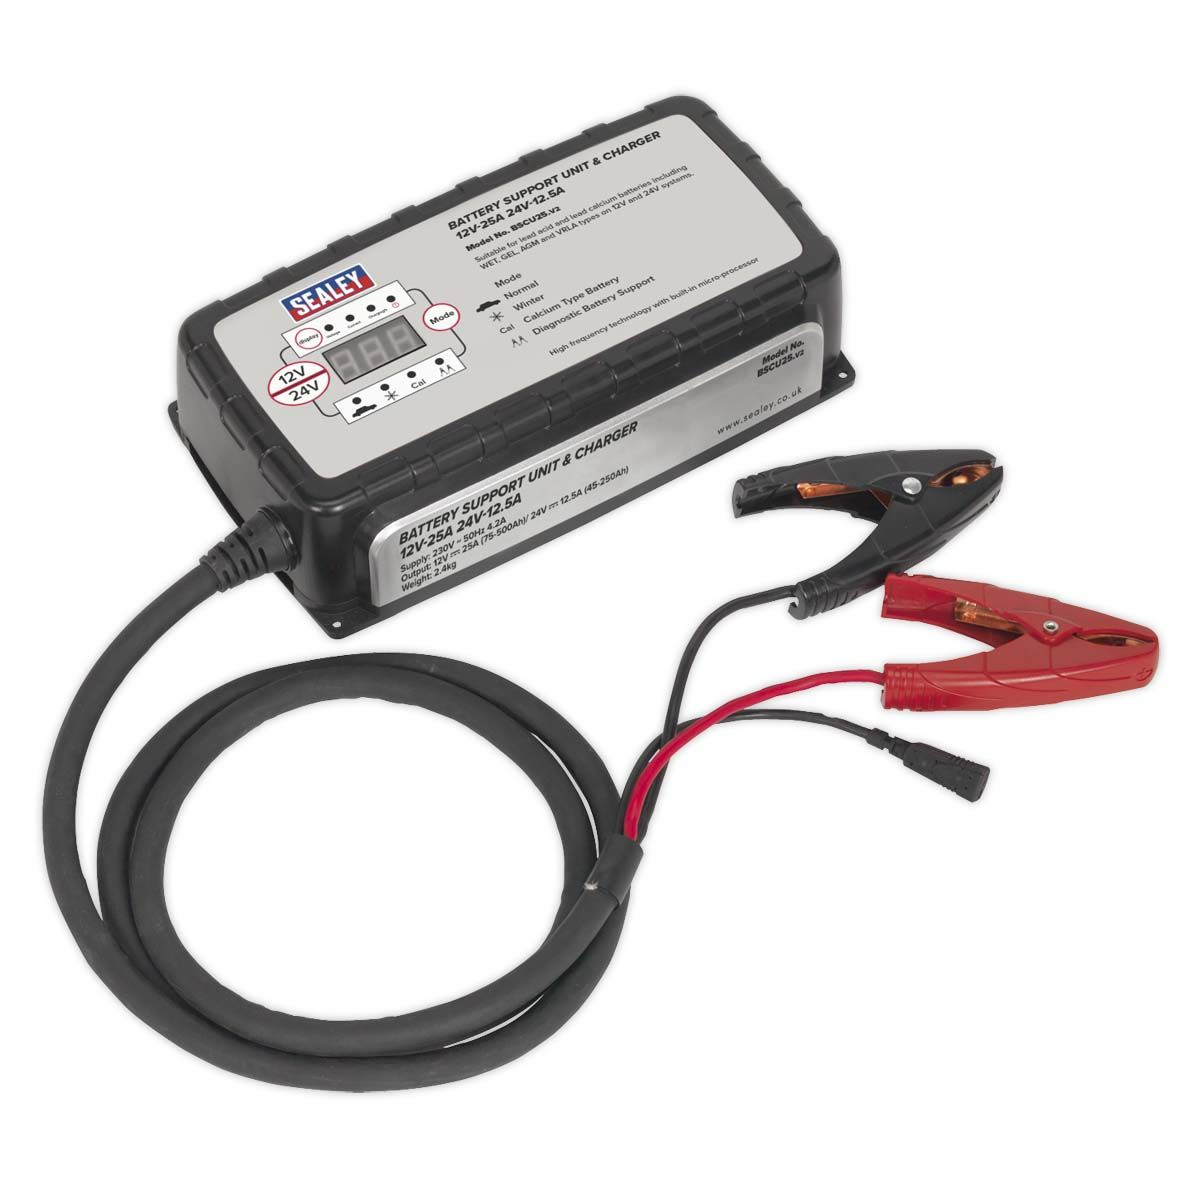 Sealey Battery Support Unit & Charger 12V-25A/24V-12.5A